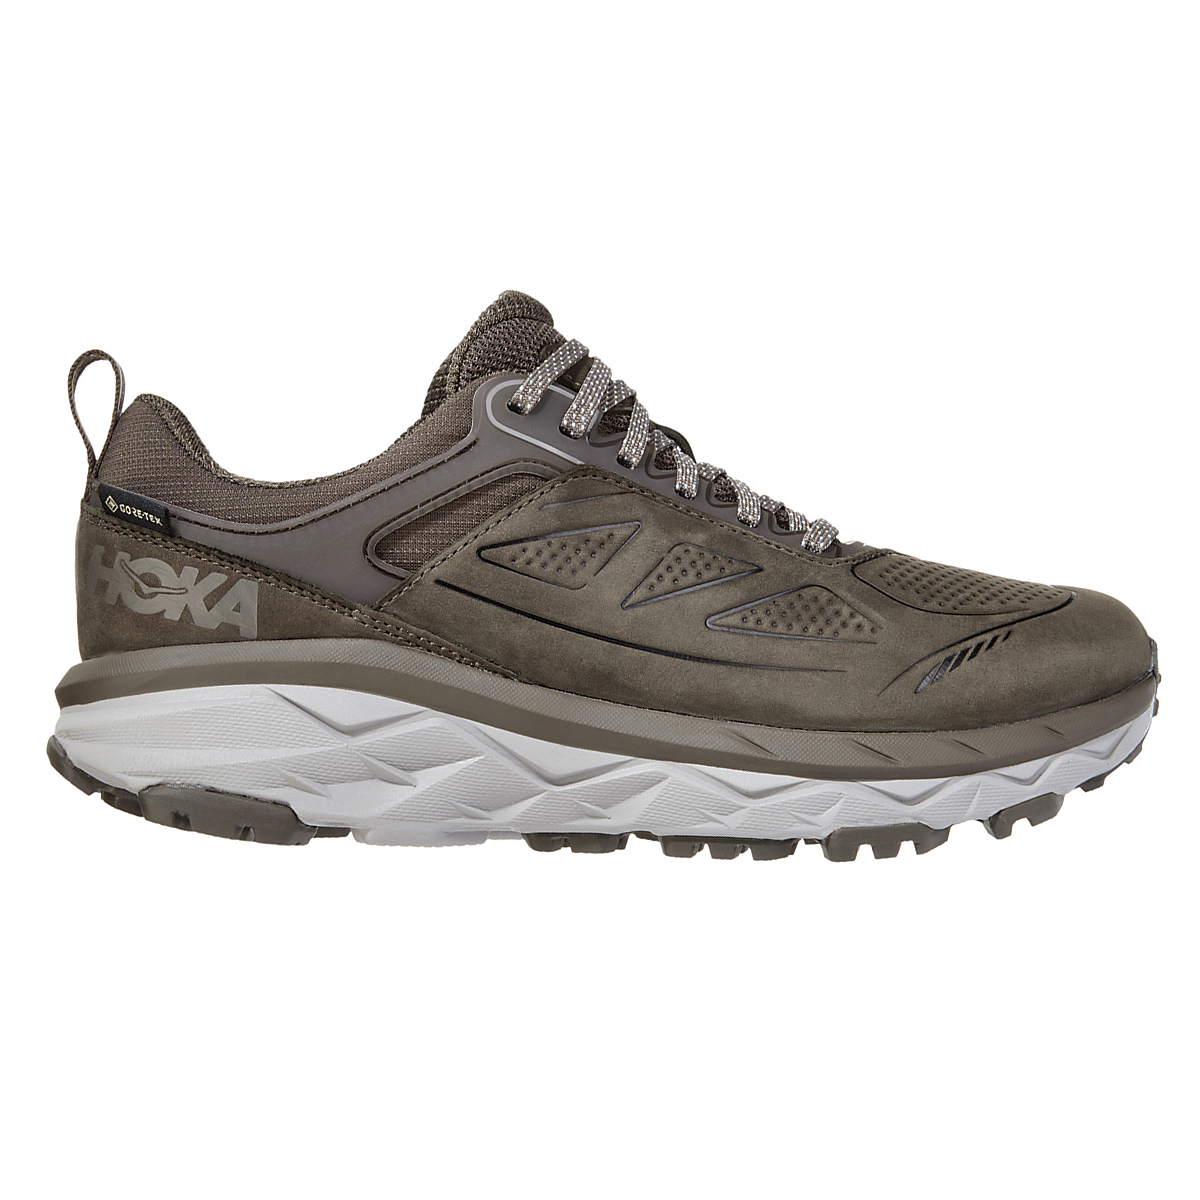 Women's Hoka One One Challenger Low Gore-Tex Trail Running Shoe - Color: Major Brown/Heather - Size: 5 - Width: Regular, Major Brown/Heather, large, image 1